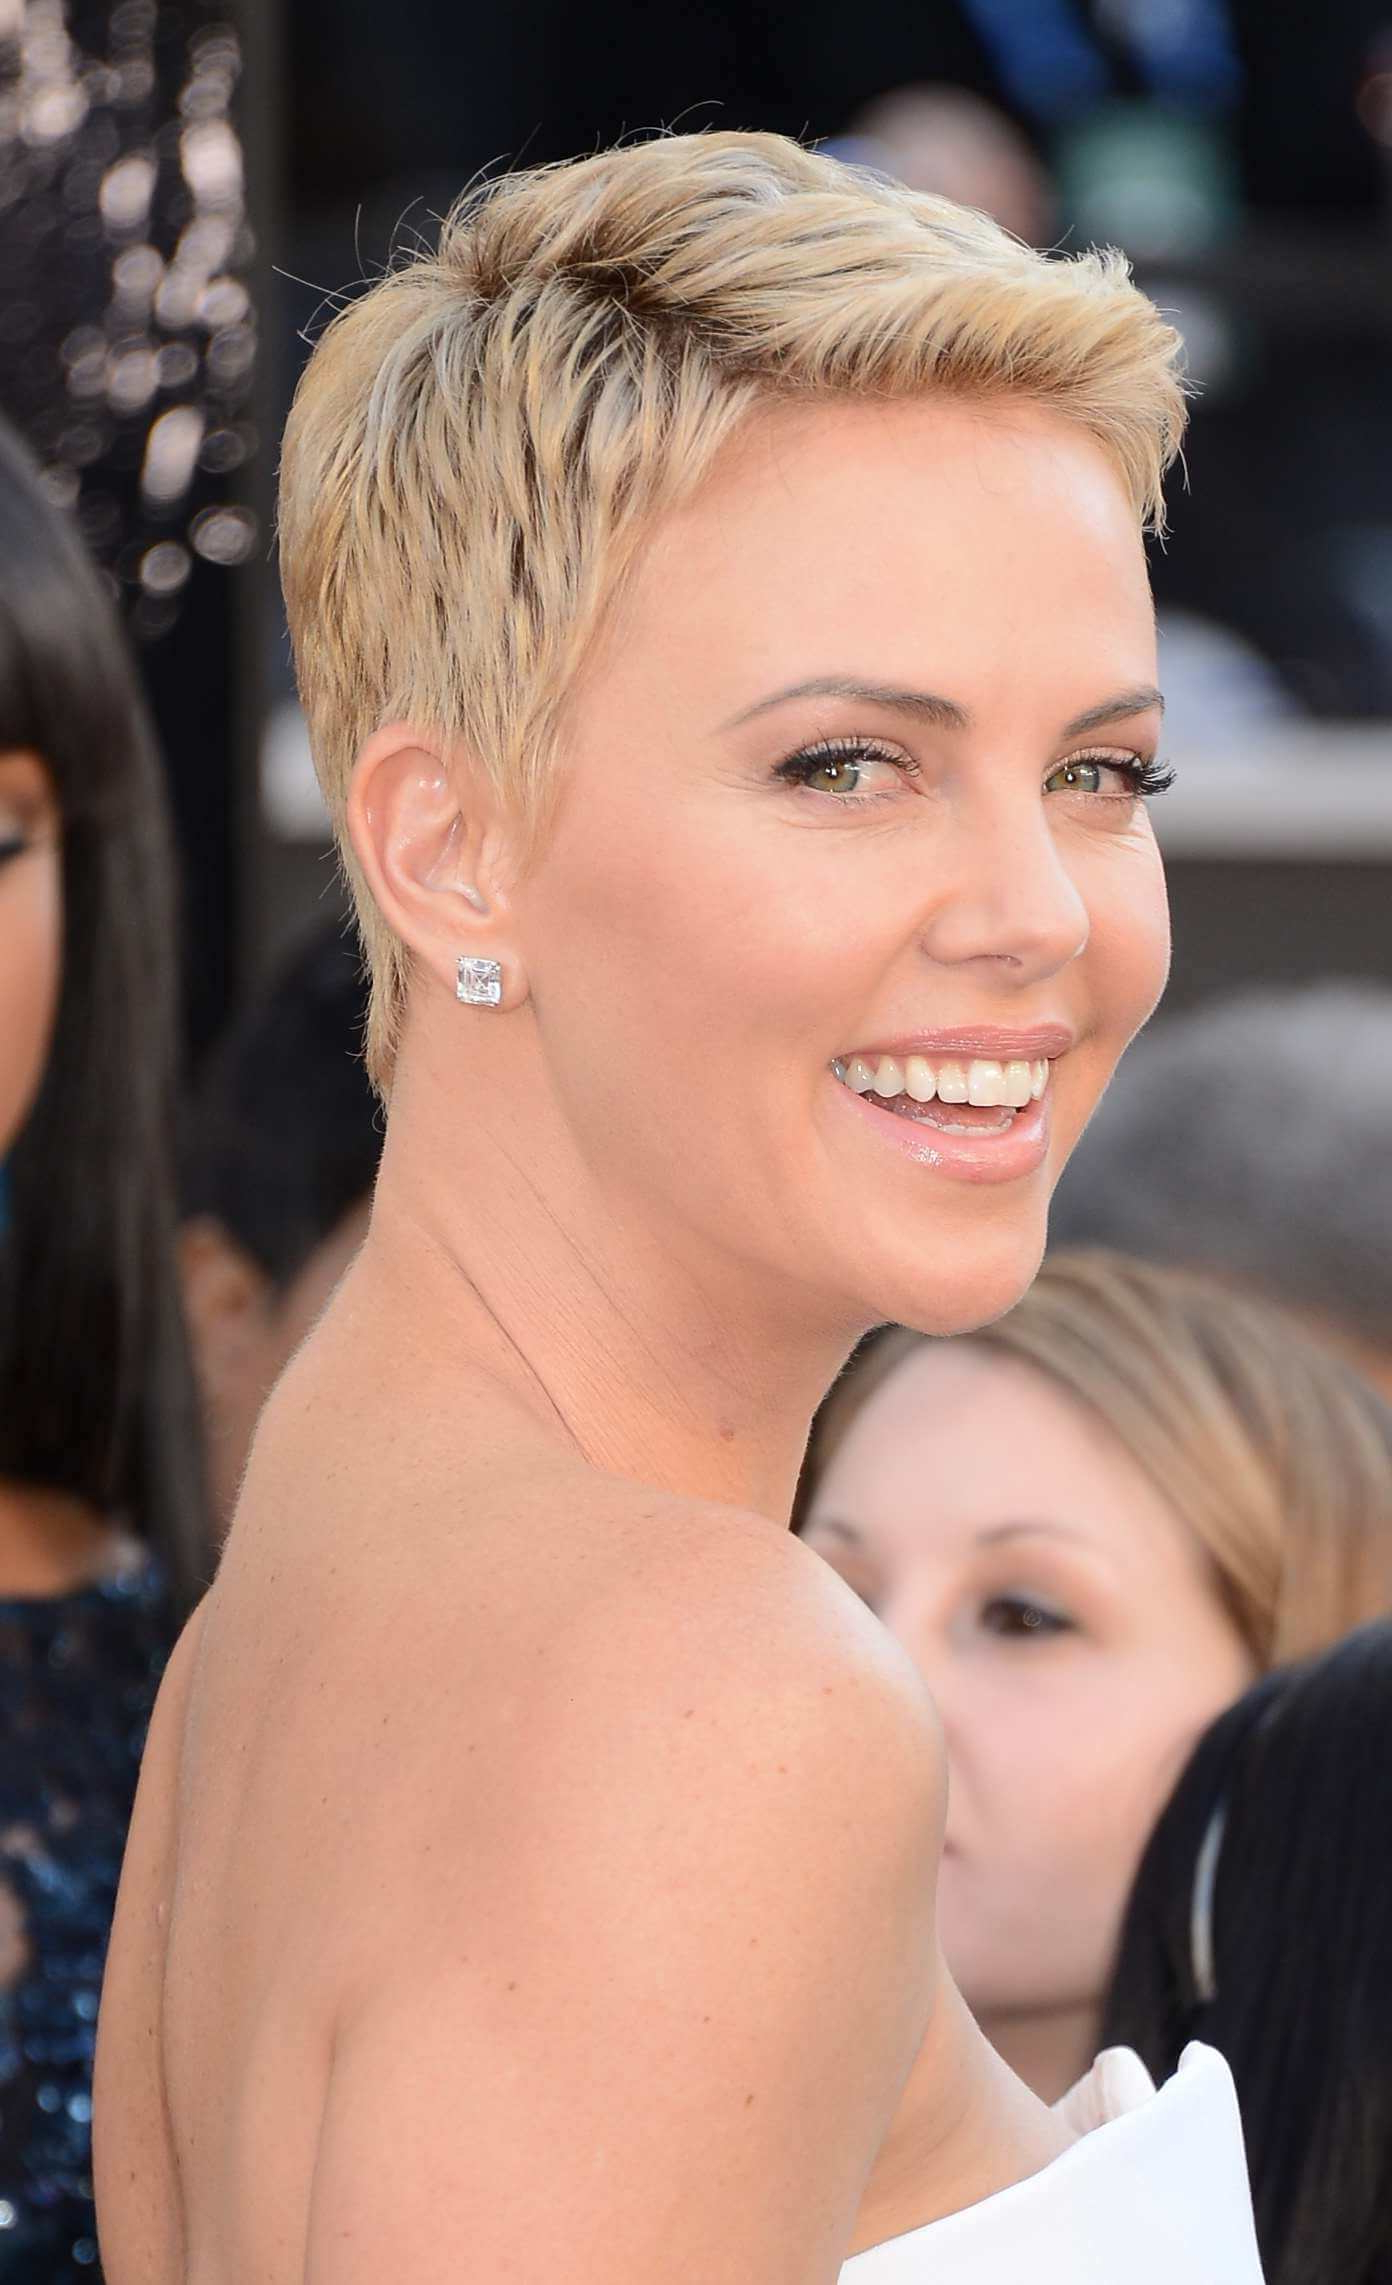 Short Pixie Haircuts For Fine Thin Hair – Short And Cuts Hairstyles Intended For The Finest Haircuts For Fine Hair (View 13 of 20)